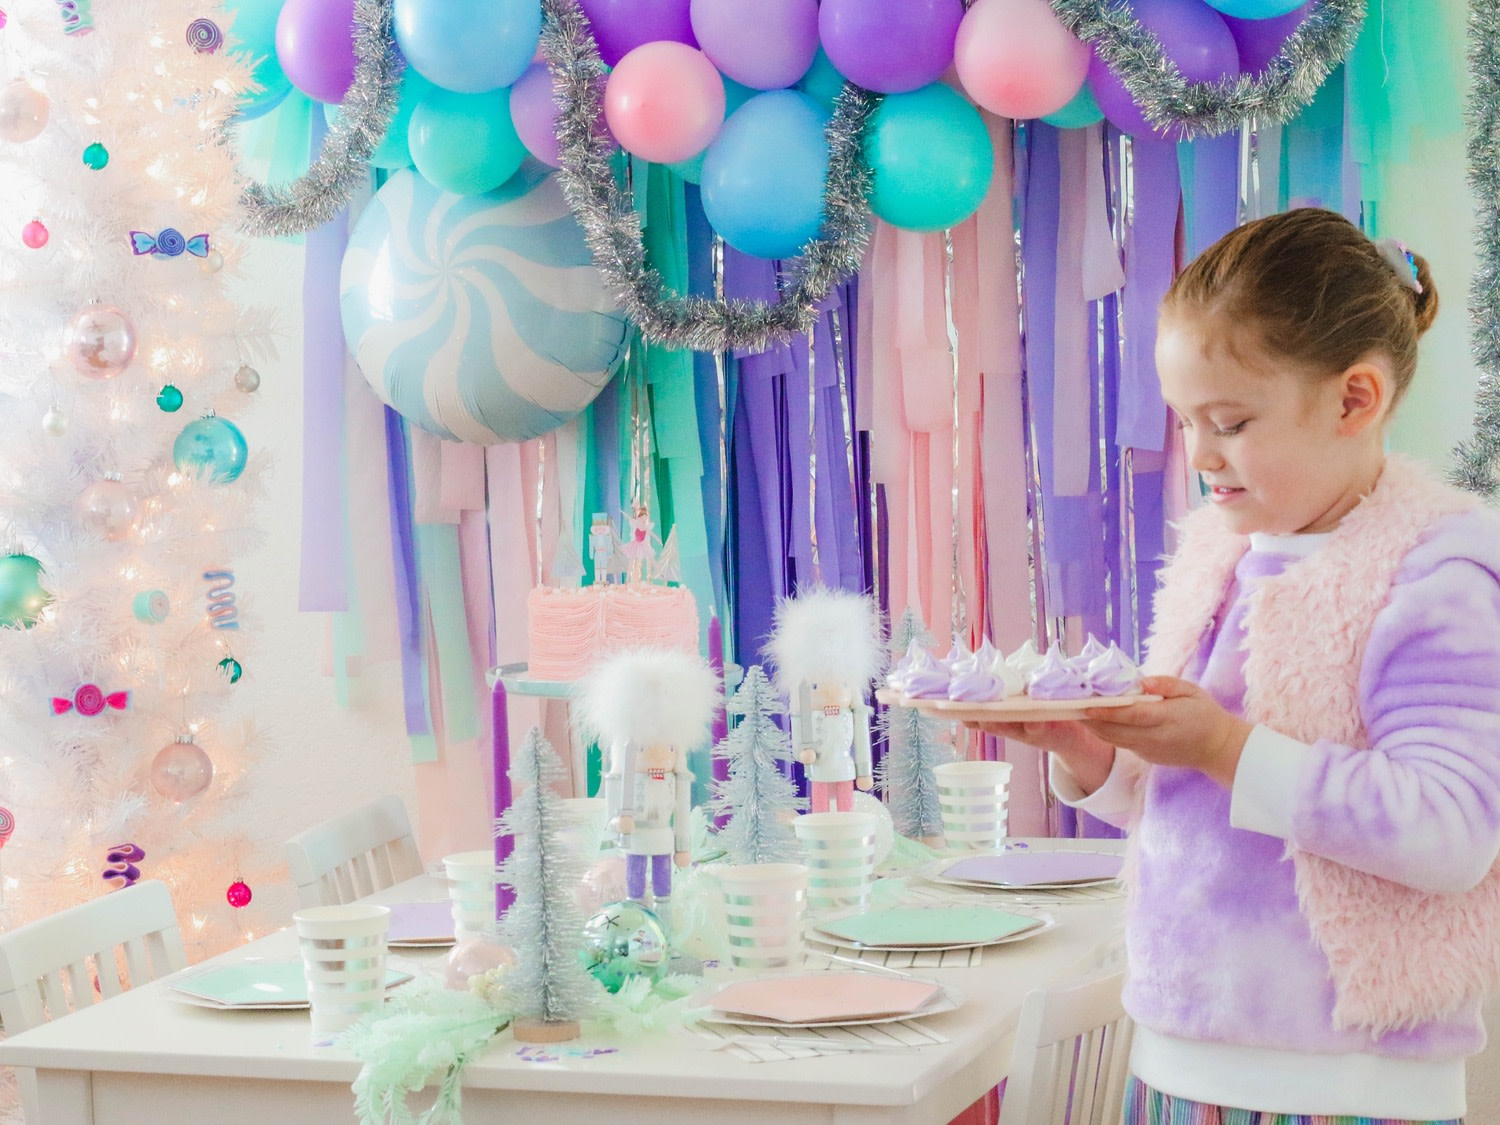 What could be sweeter than a holiday party inspired by the sugar plum fairy, complete with purple swirl meringue kisses and DIY lollipop ornaments made from upcycled egg cartons?